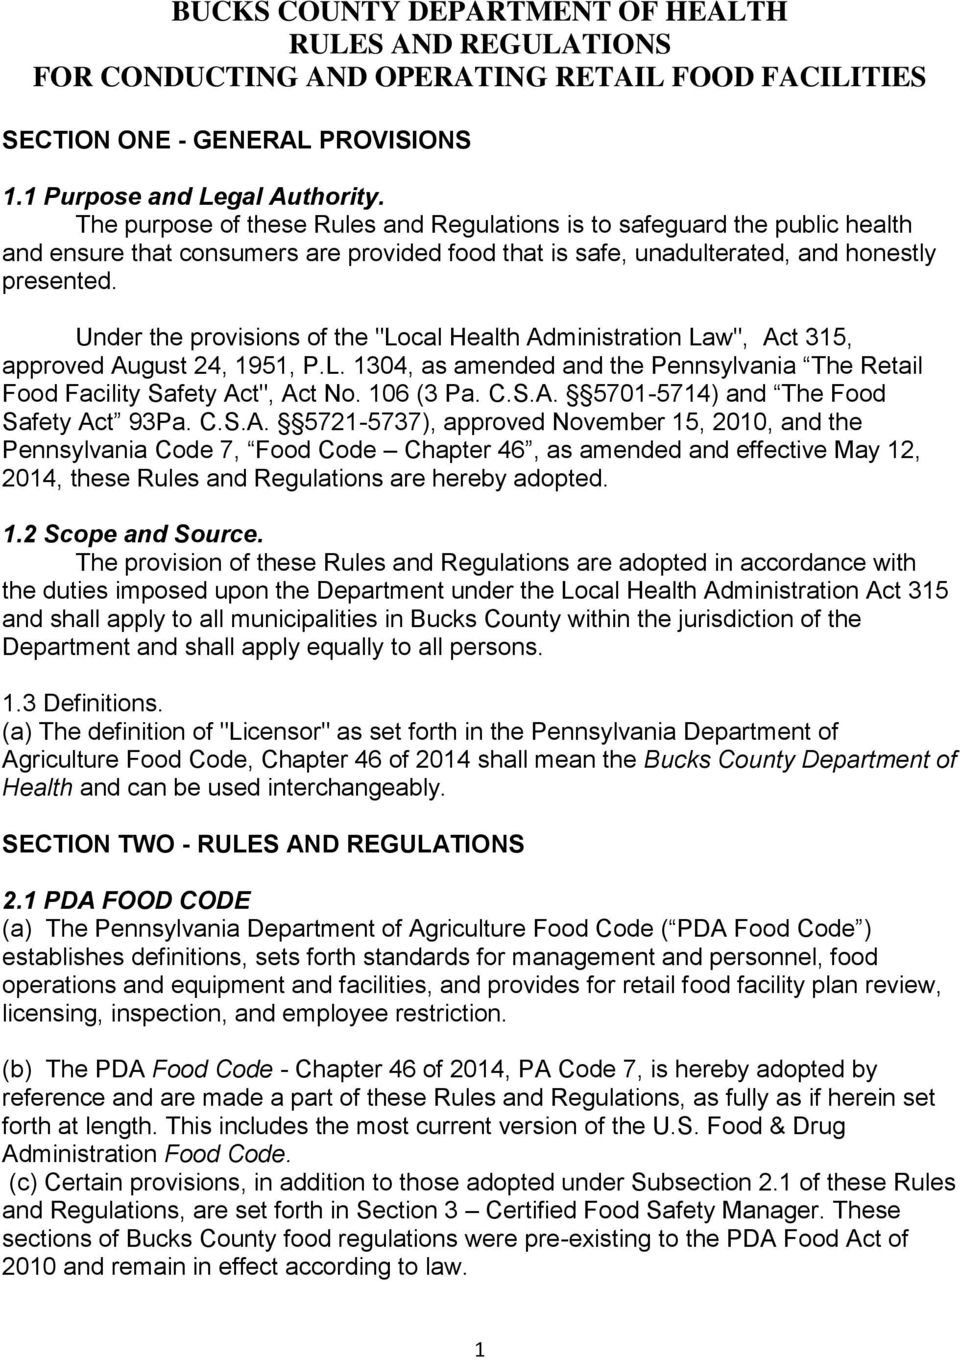 "Under the provisions of the ""Local Health Administration Law"", Act 315, approved August 24, 1951, P.L. 1304, as amended and the Pennsylvania The Retail Food Facility Safety Act"", Act No. 106 (3 Pa. C."